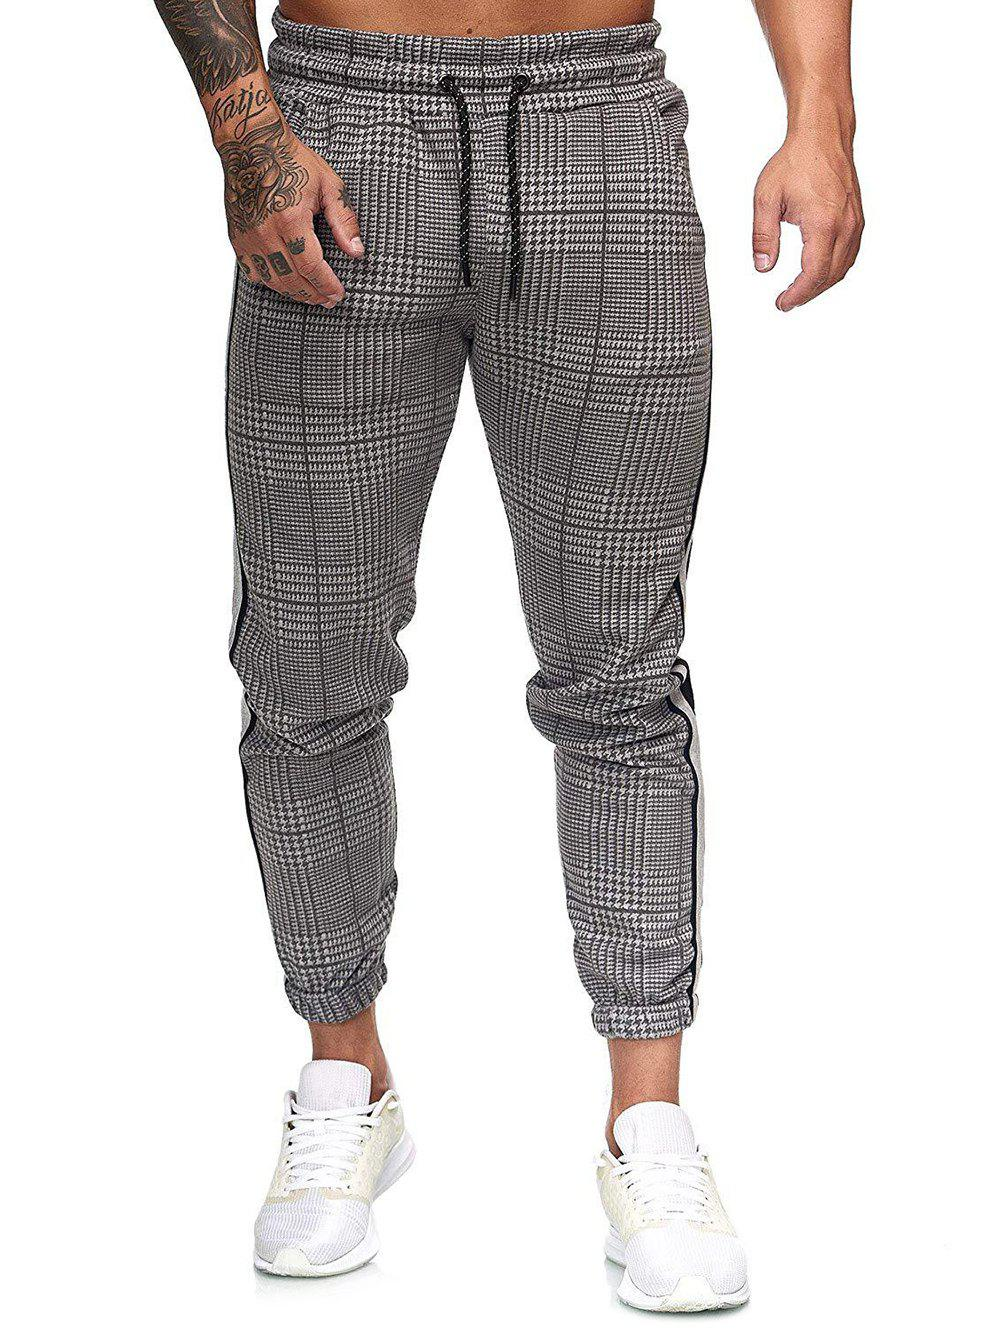 Houndstooth Print Side Stripe Jogger Pants - multicolor B M